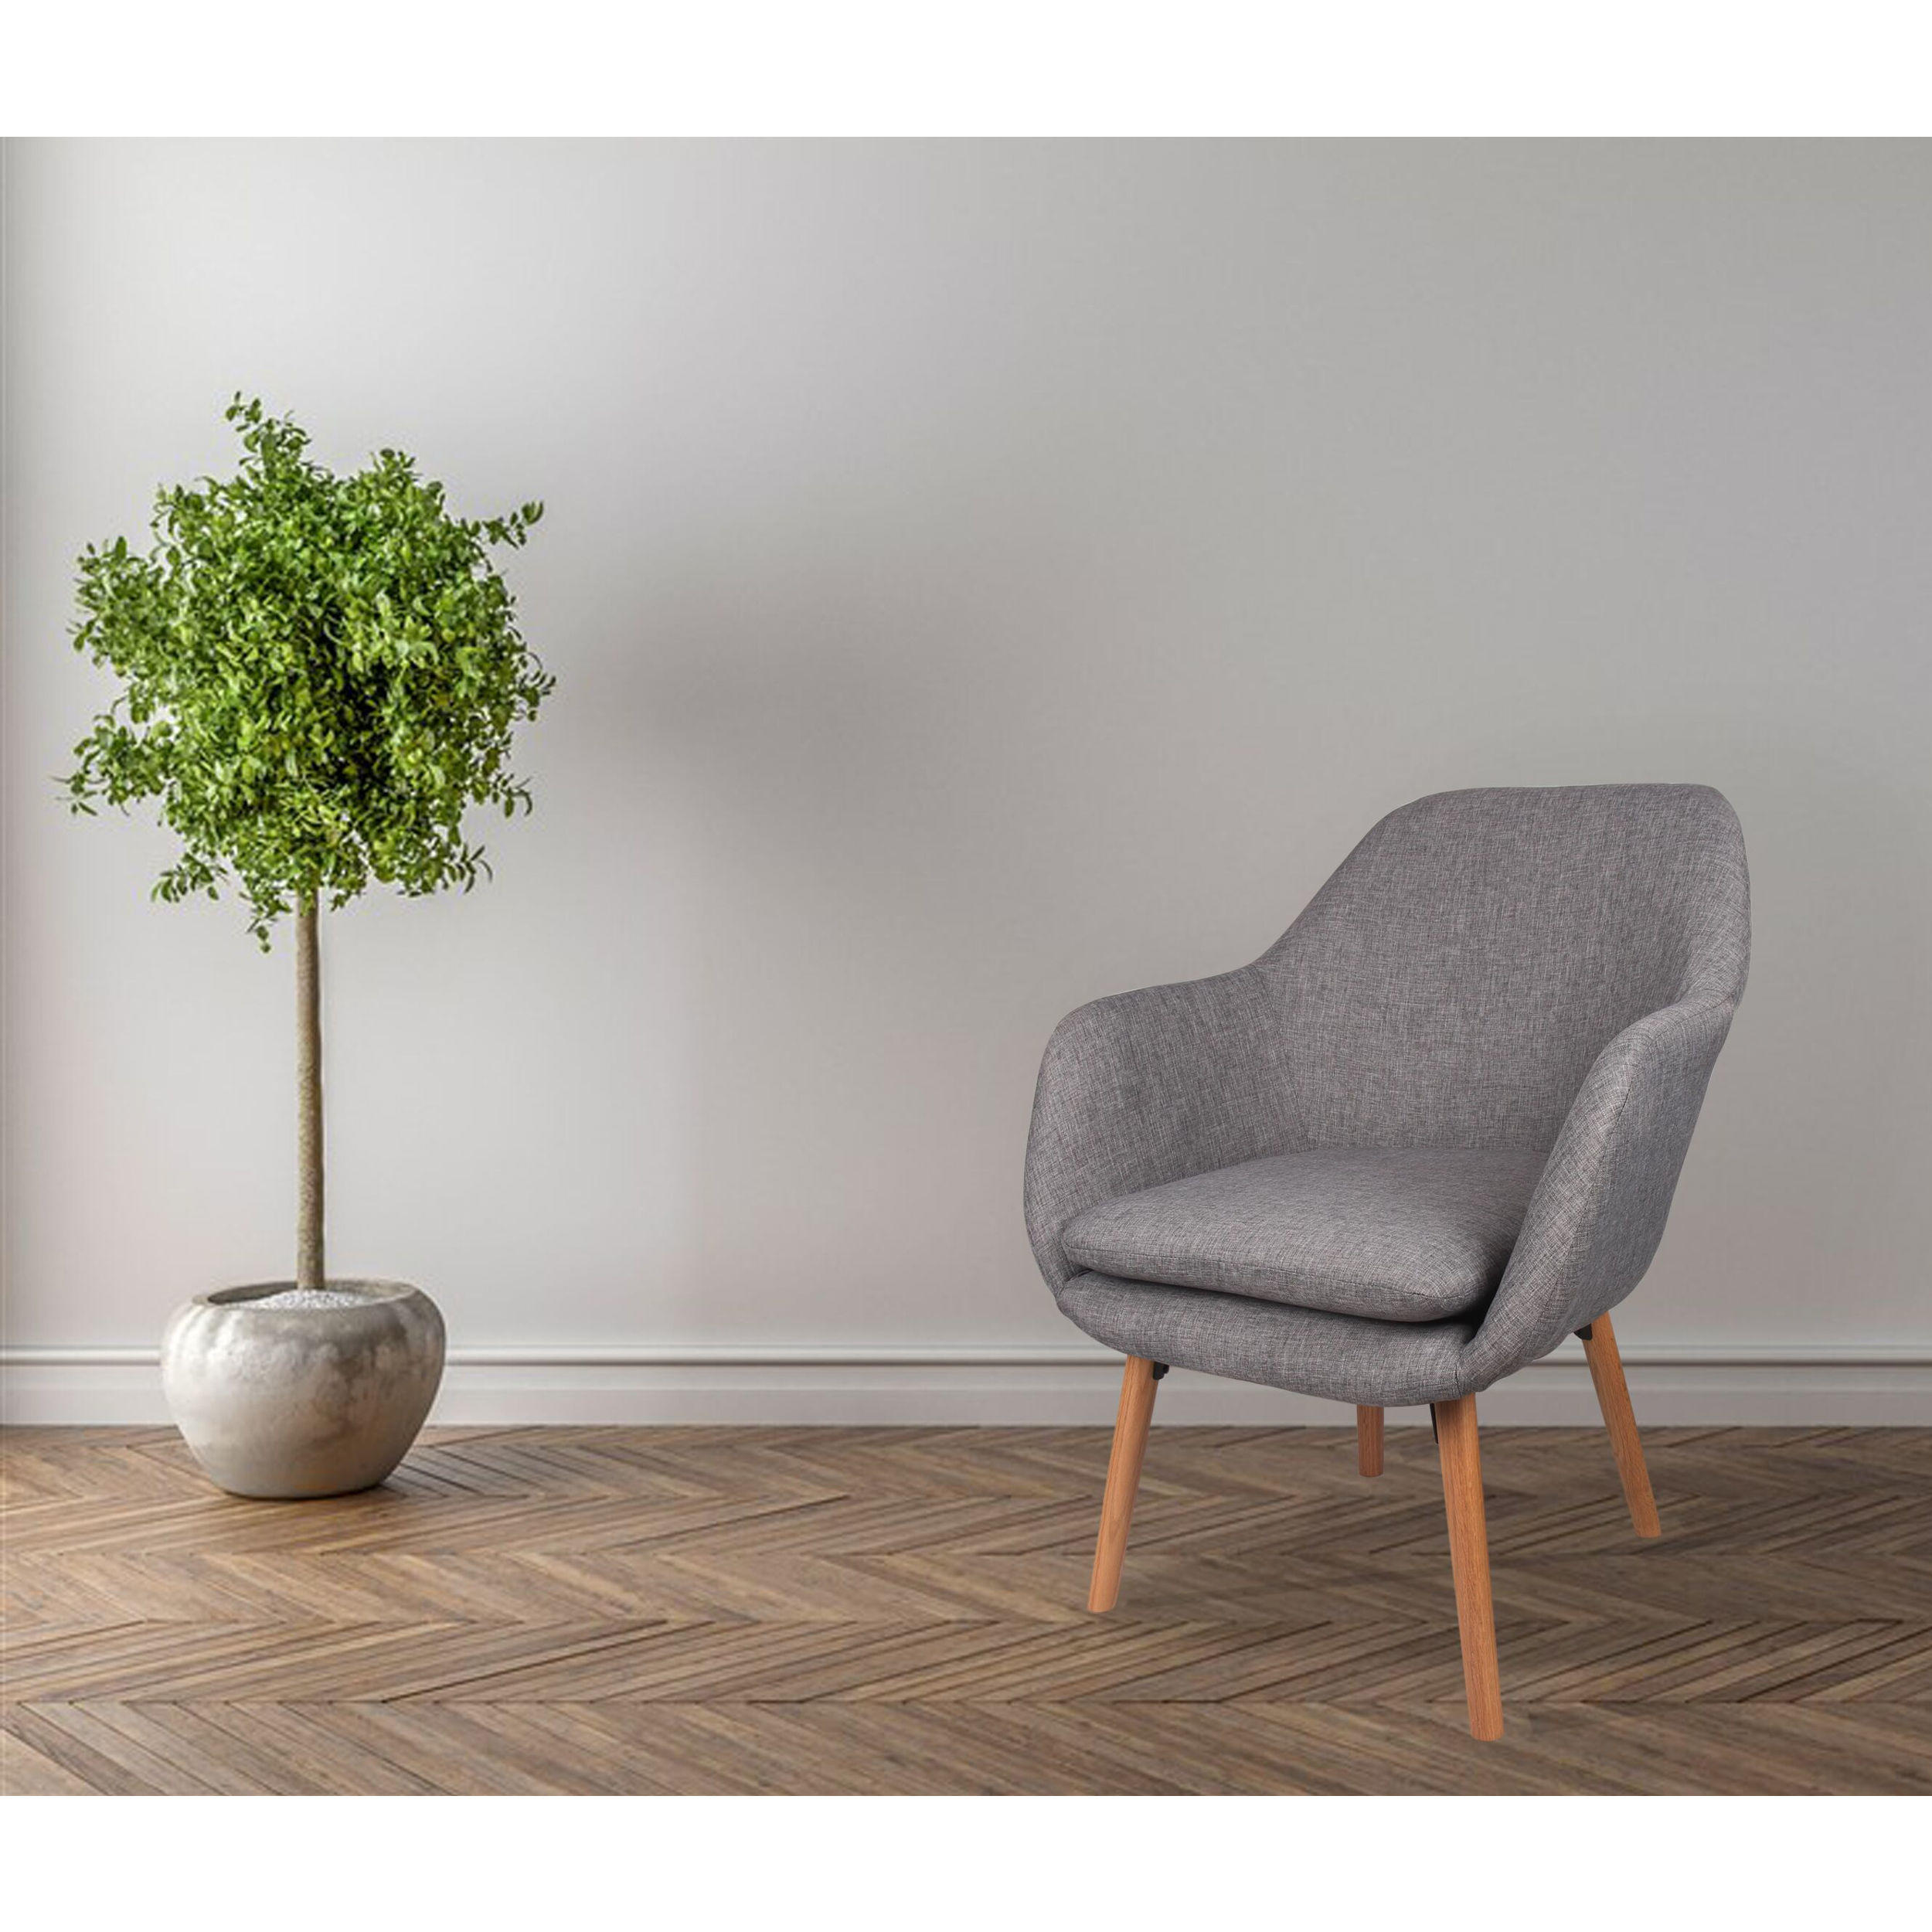 Moustache Accent Chairs Living Room Chair Modern Fabric Sofa Arm Chair Armchair With Cushion Seat Beech Wood Legs Gray Walmart Canada